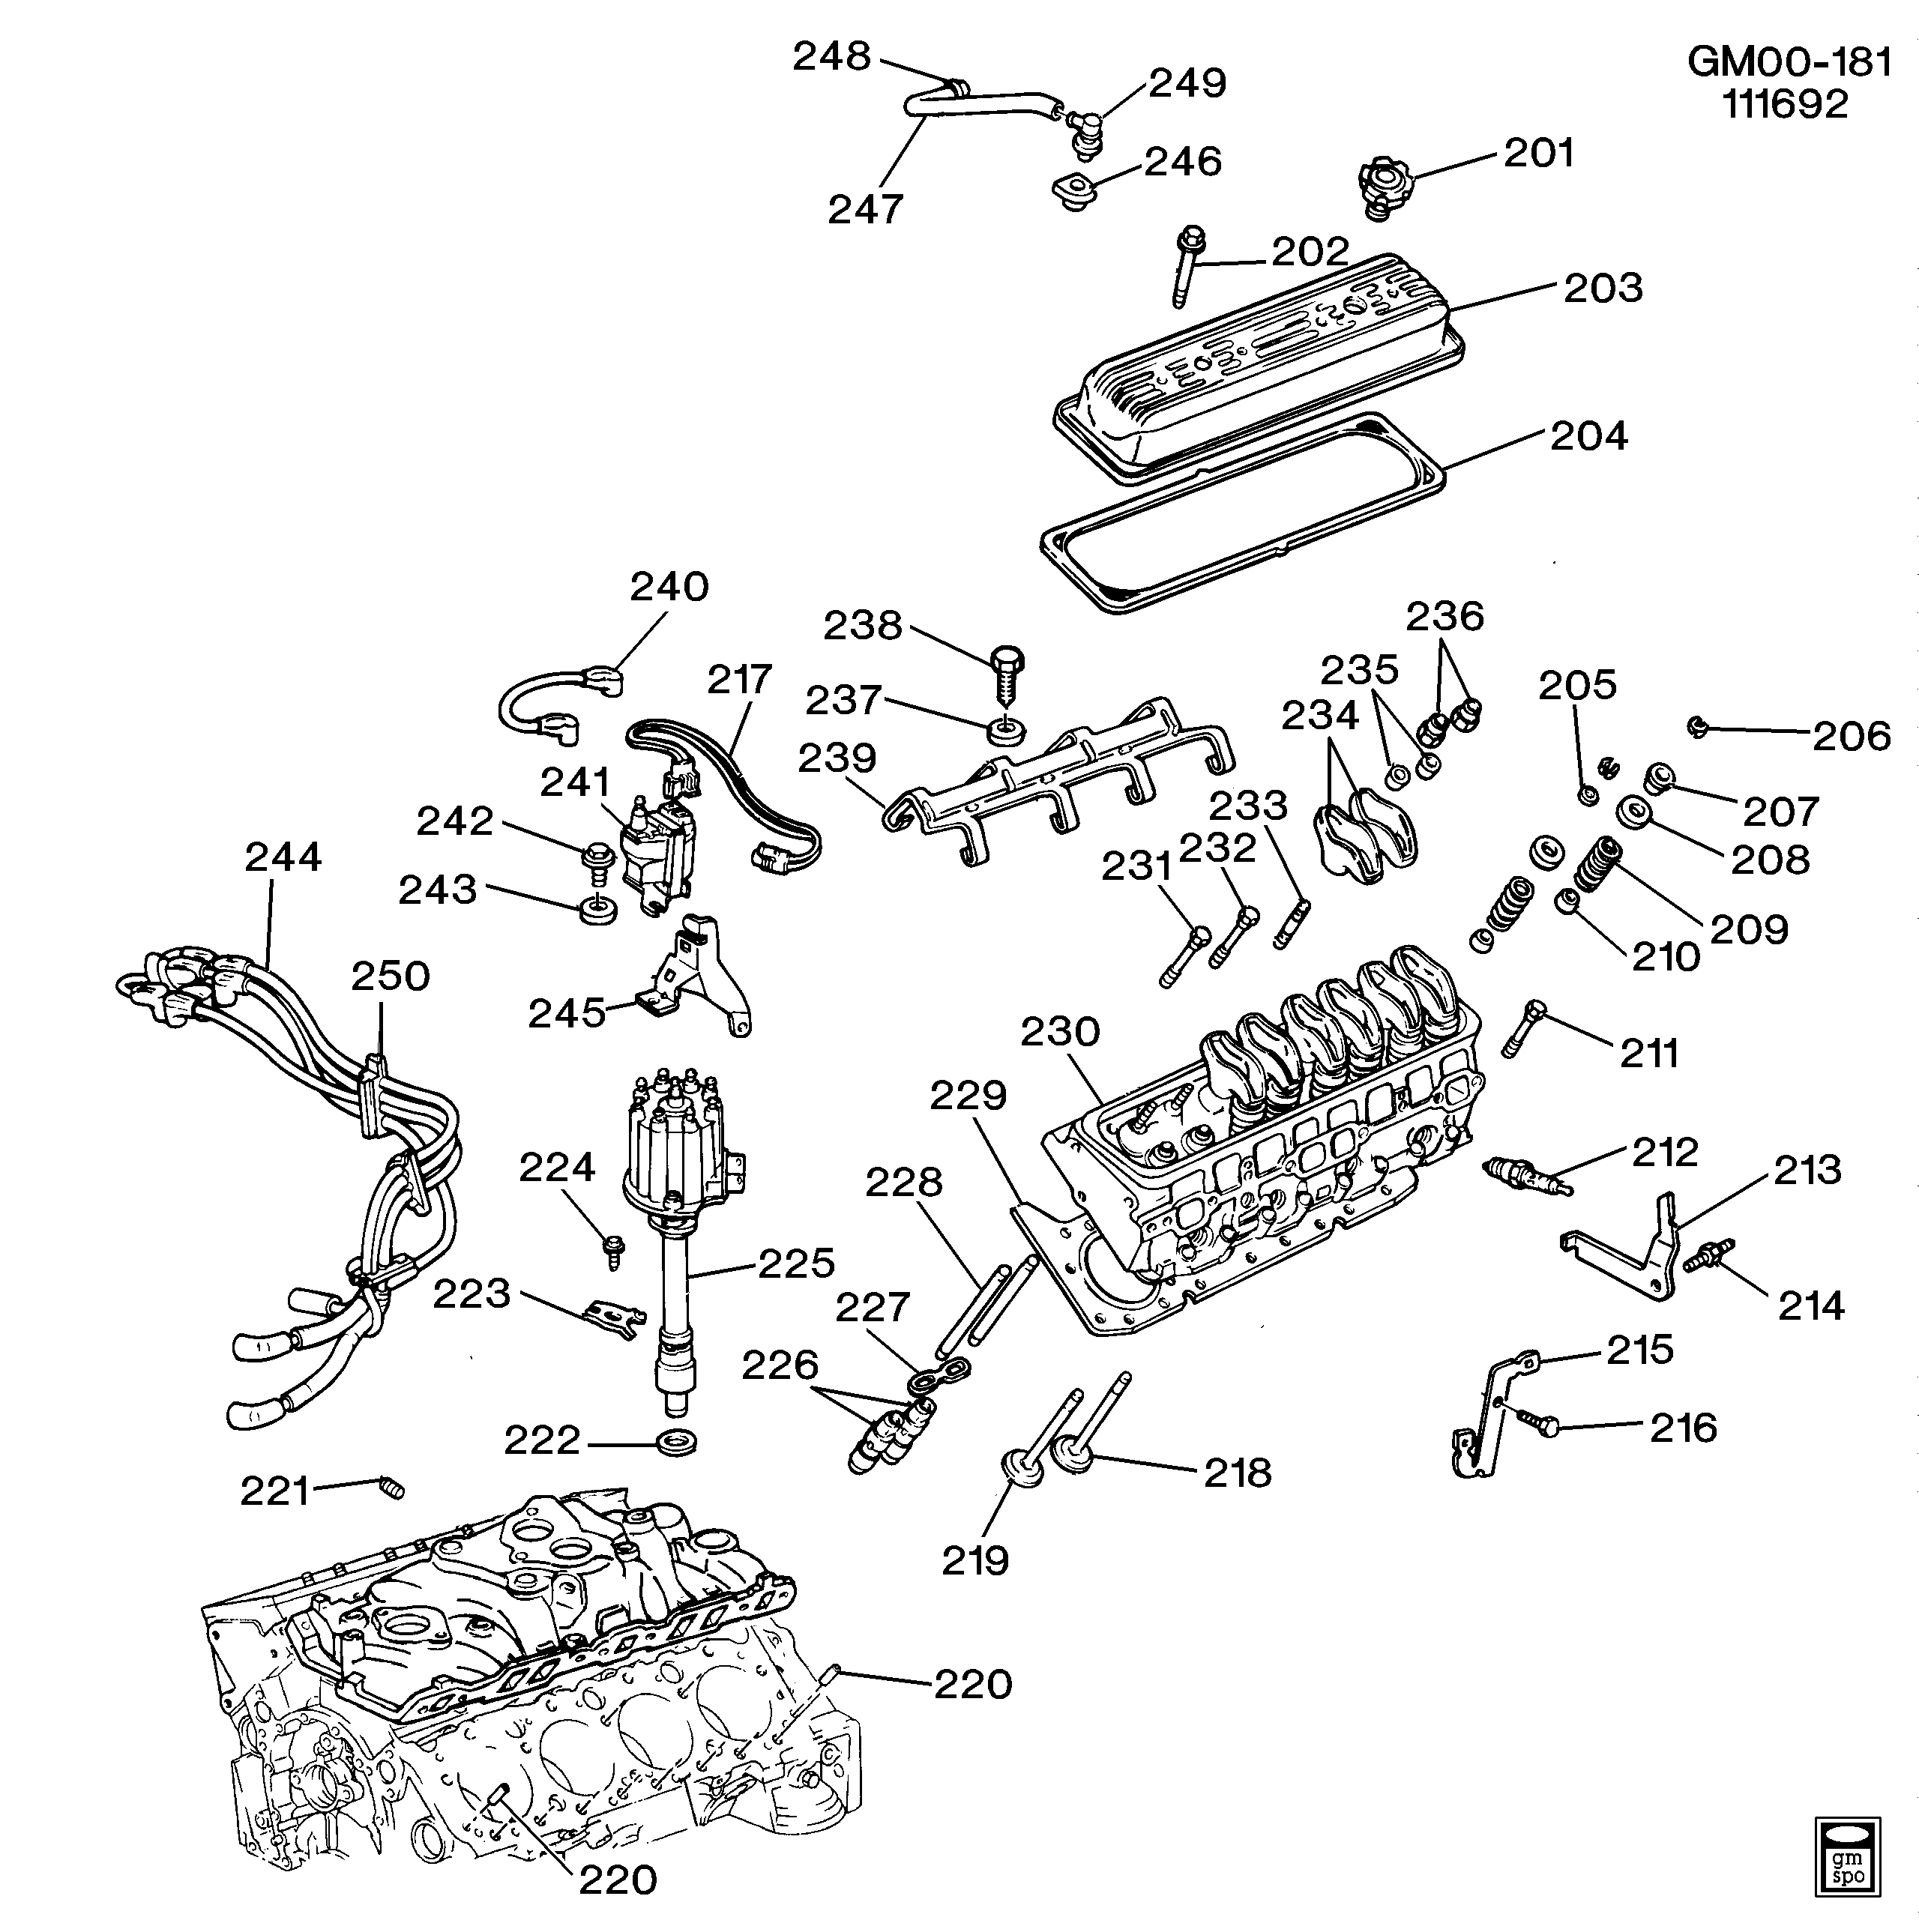 1991 Caprice Engine Diagram Trusted Wiring 1992 B Asm 5 0 7l V8 Part 2 Cylinder Head And Related